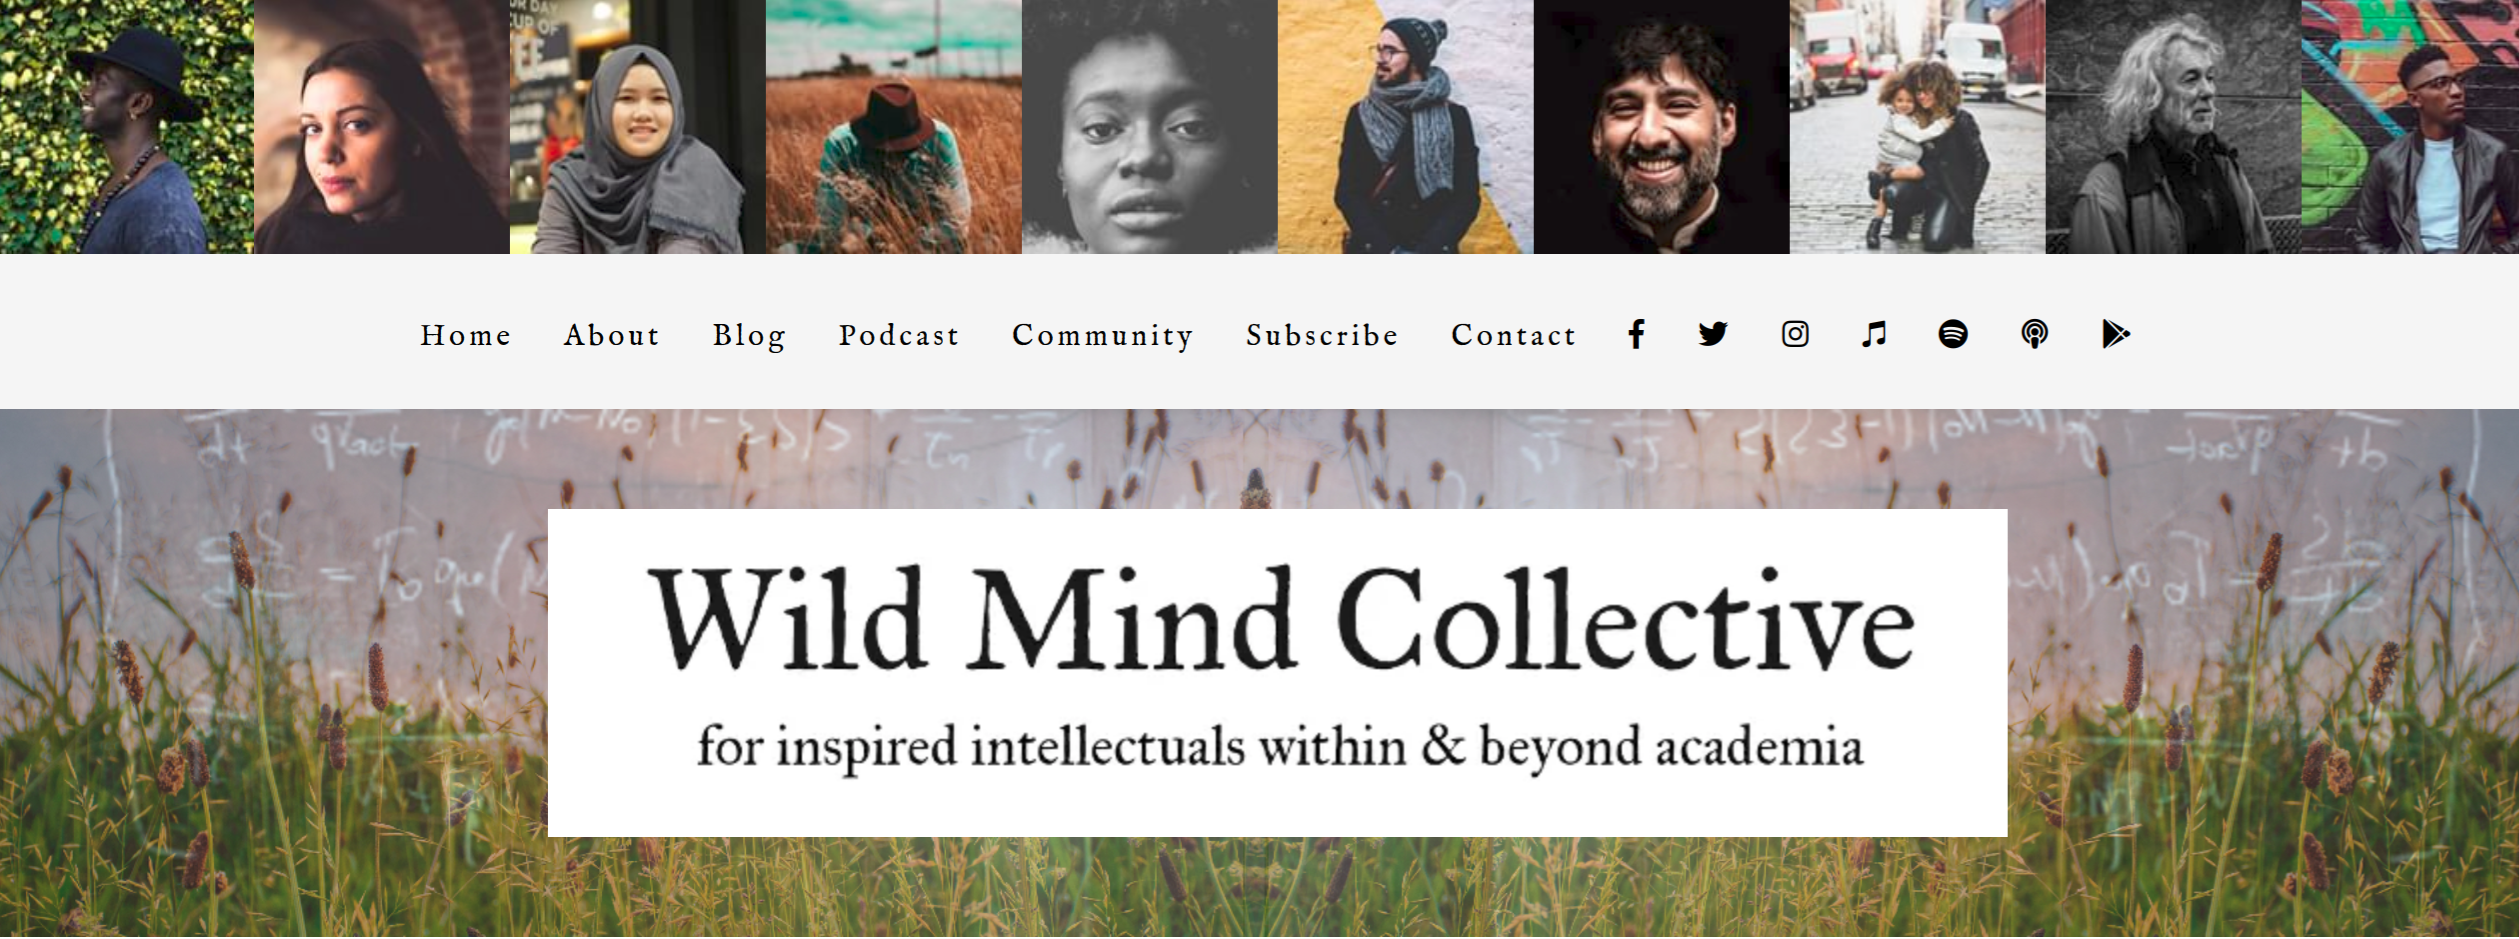 Wild Mind Collective.png